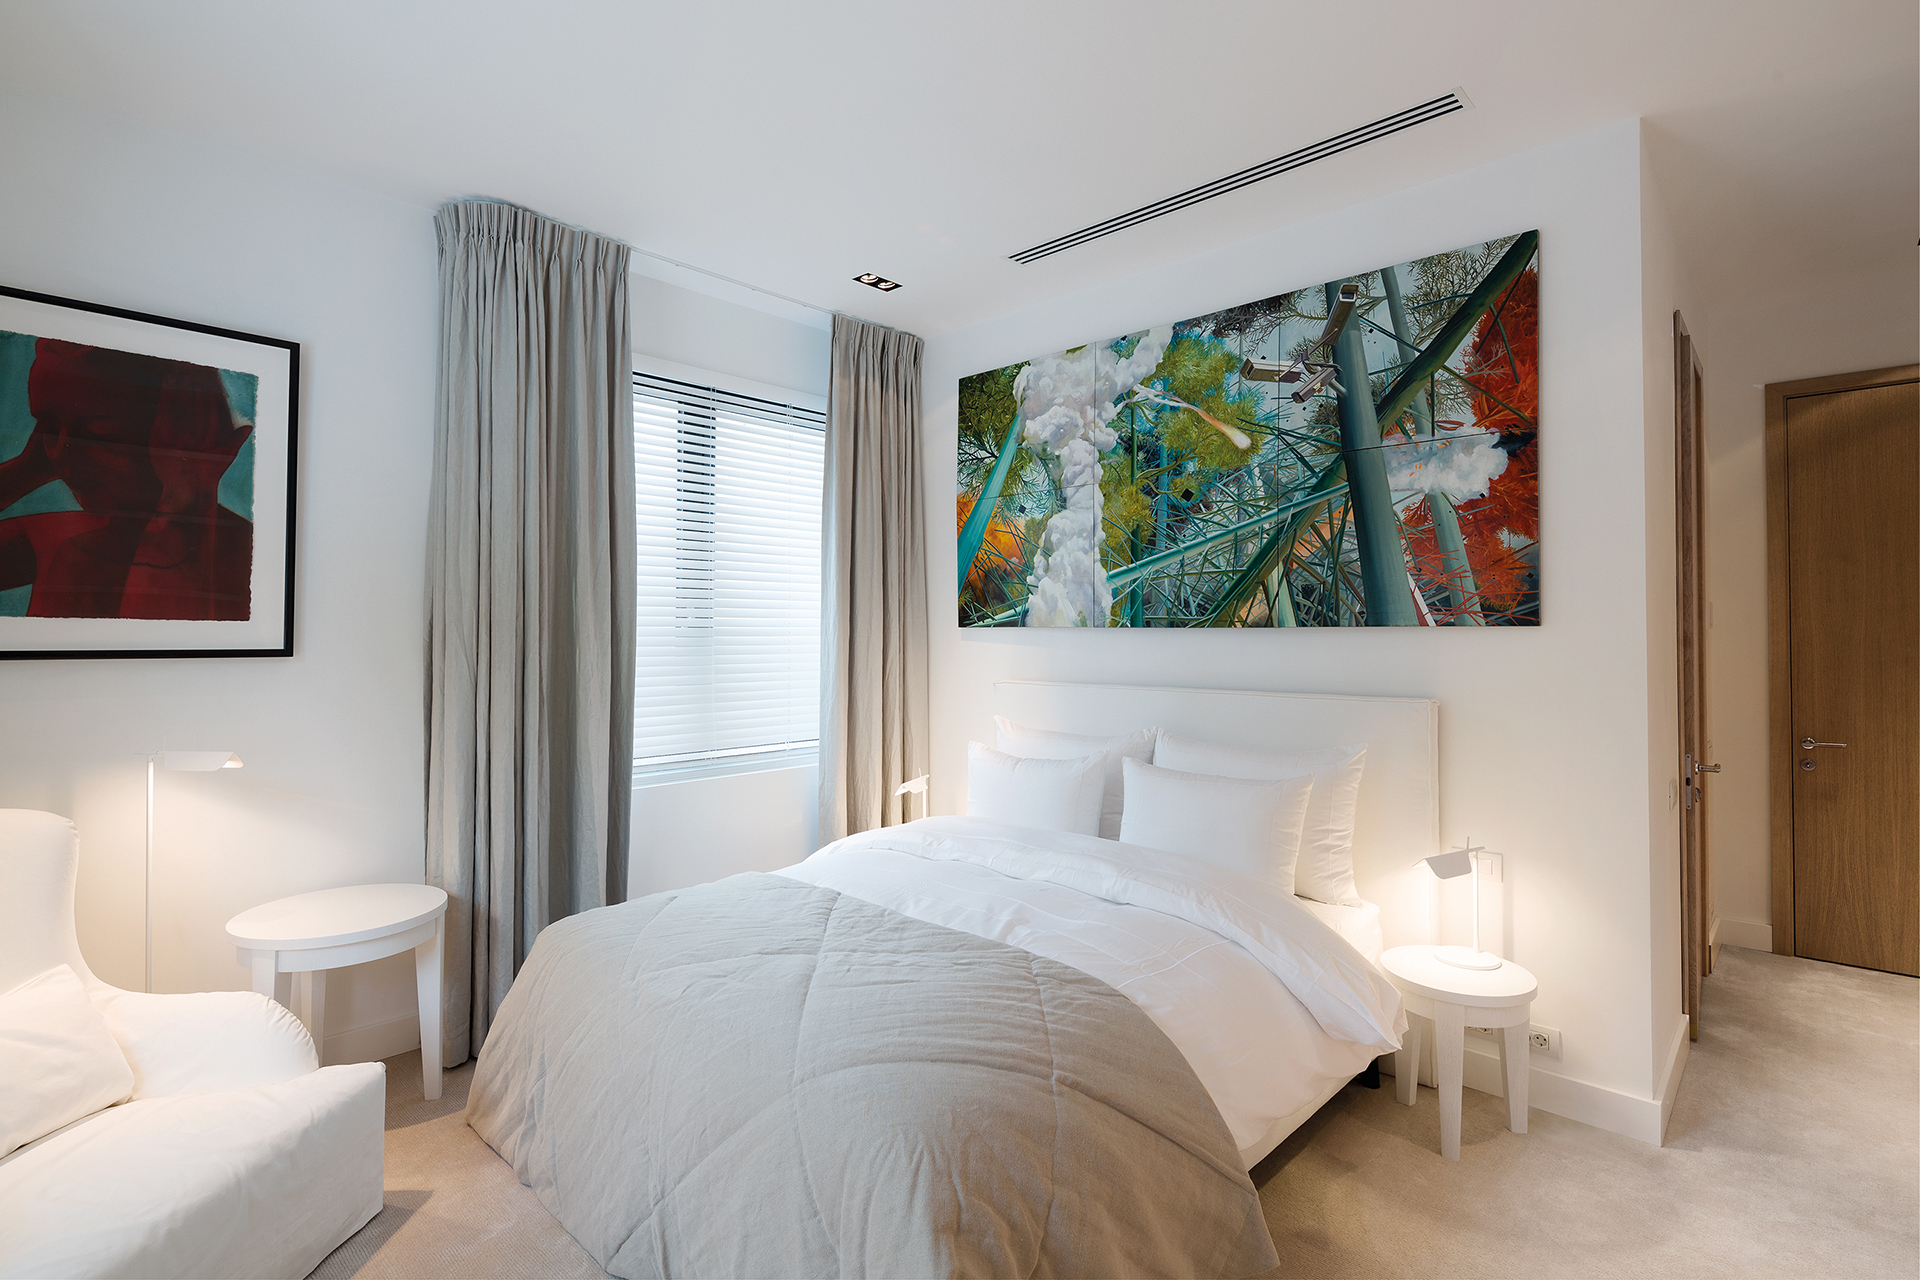 comfortable guestroom in white with art